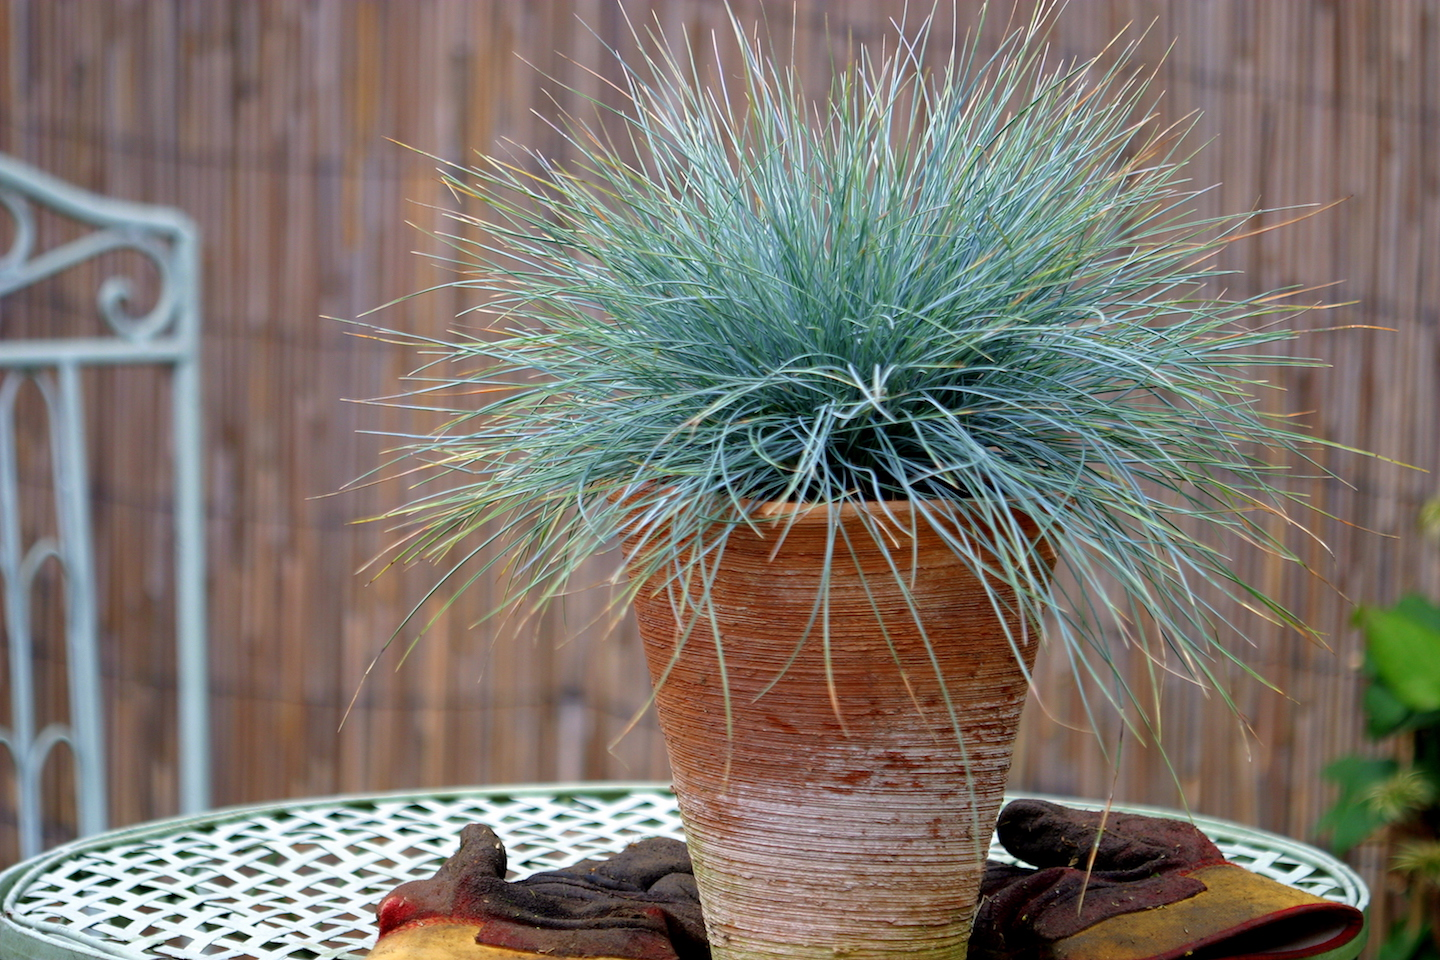 ornamental grass Festuca Elijah Blue in a terracotta pot